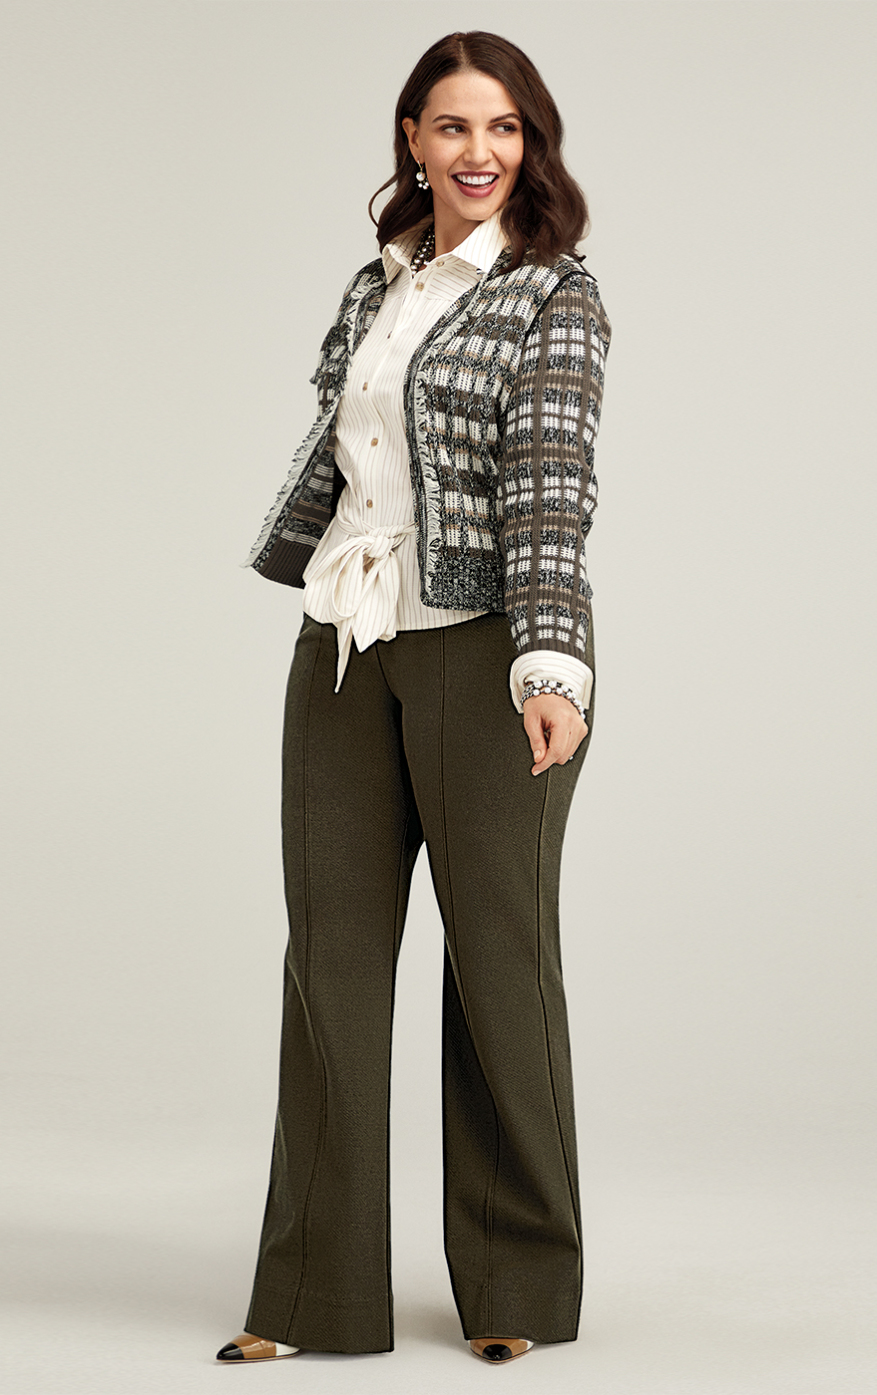 Classic Cardigan in Silver, Academy Trouser in Wren, Tied-Up Shirt in Taupe Stripe